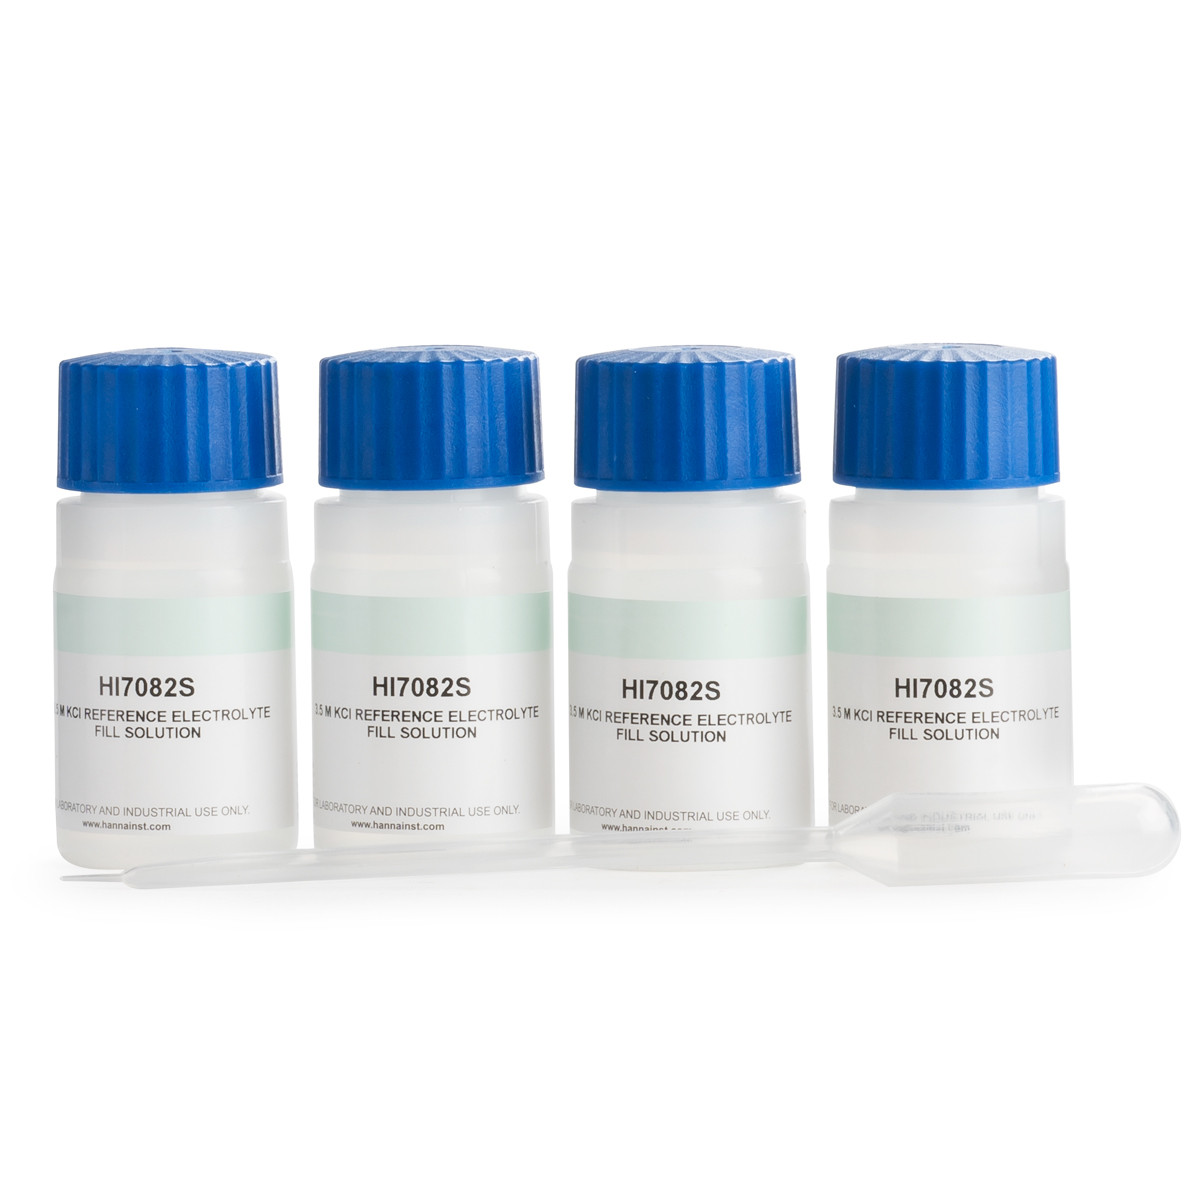 3.5M KCl electrolyte fill solution for double-junction electrodes (4 x 30mL)